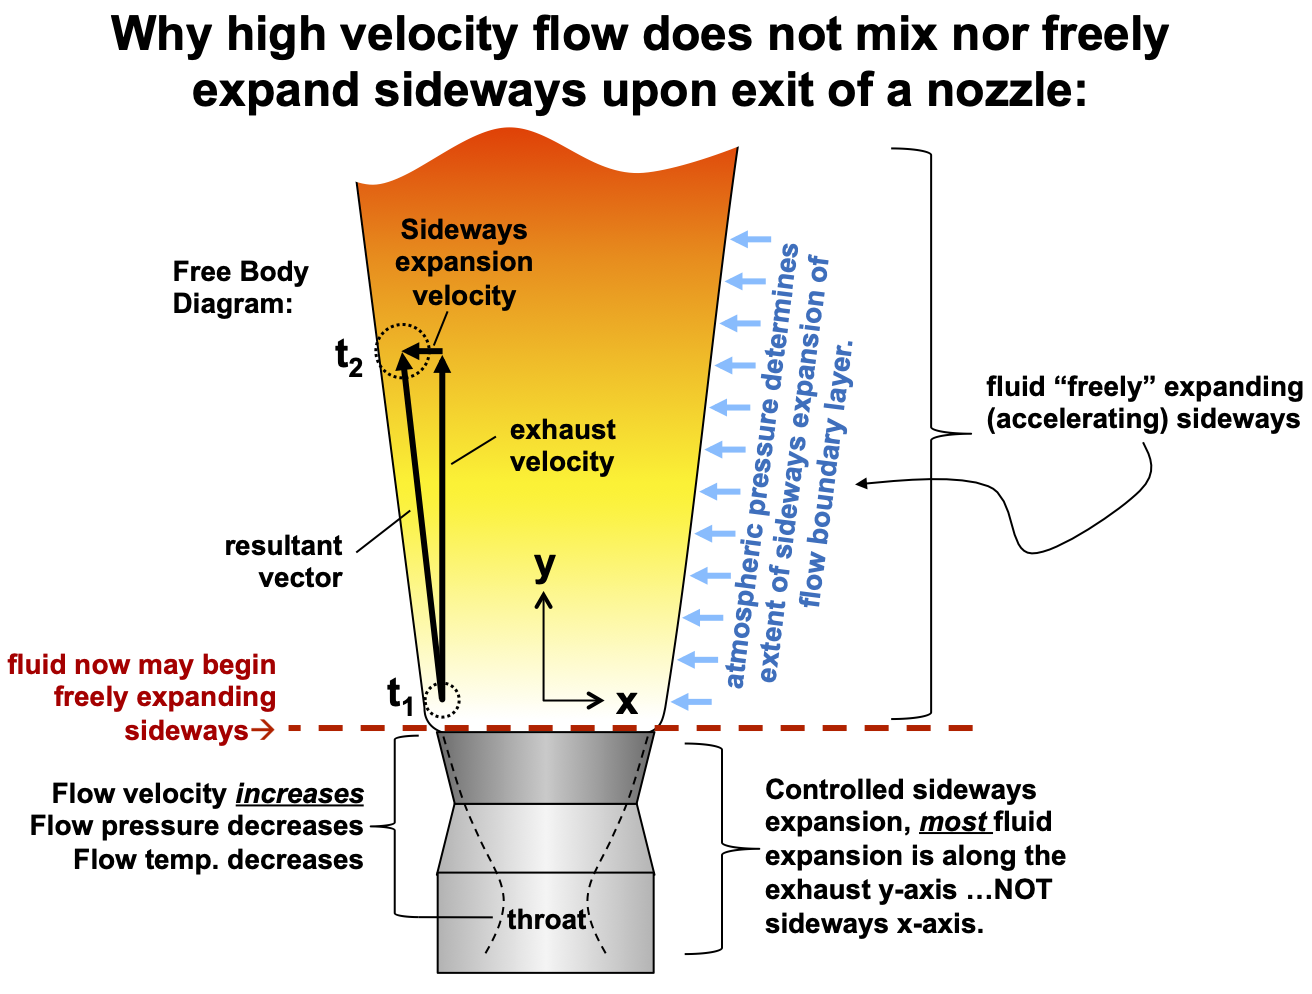 High velocity flow doesn't mix nor freely expand sideways upon exiting a nozzle